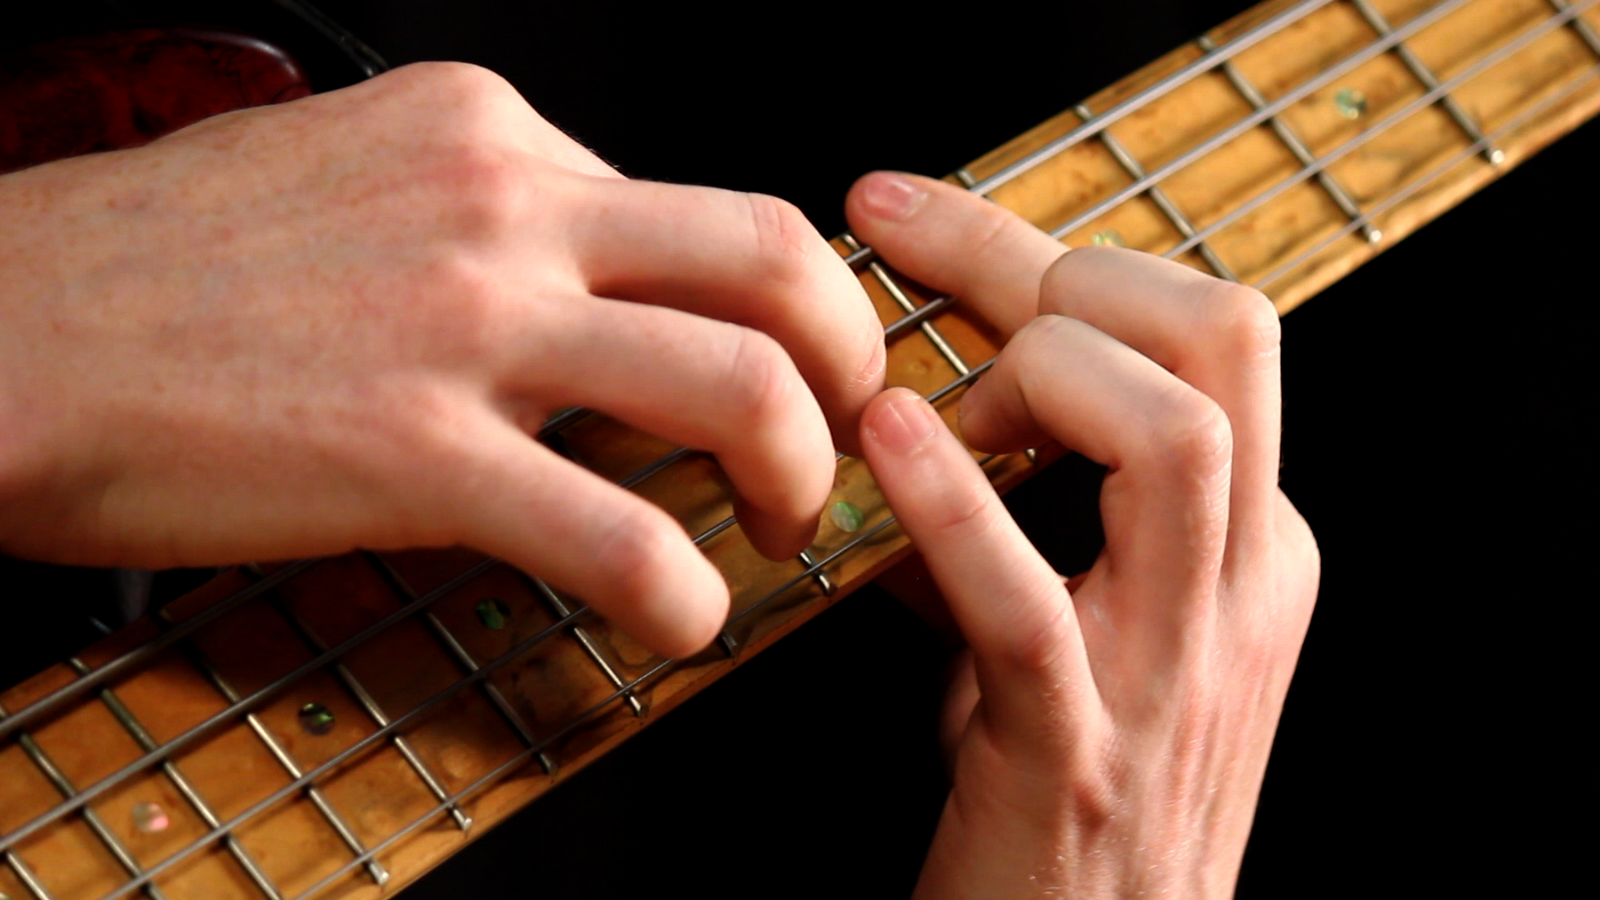 Tapping On Bass Guitar. Part 1 - Basics